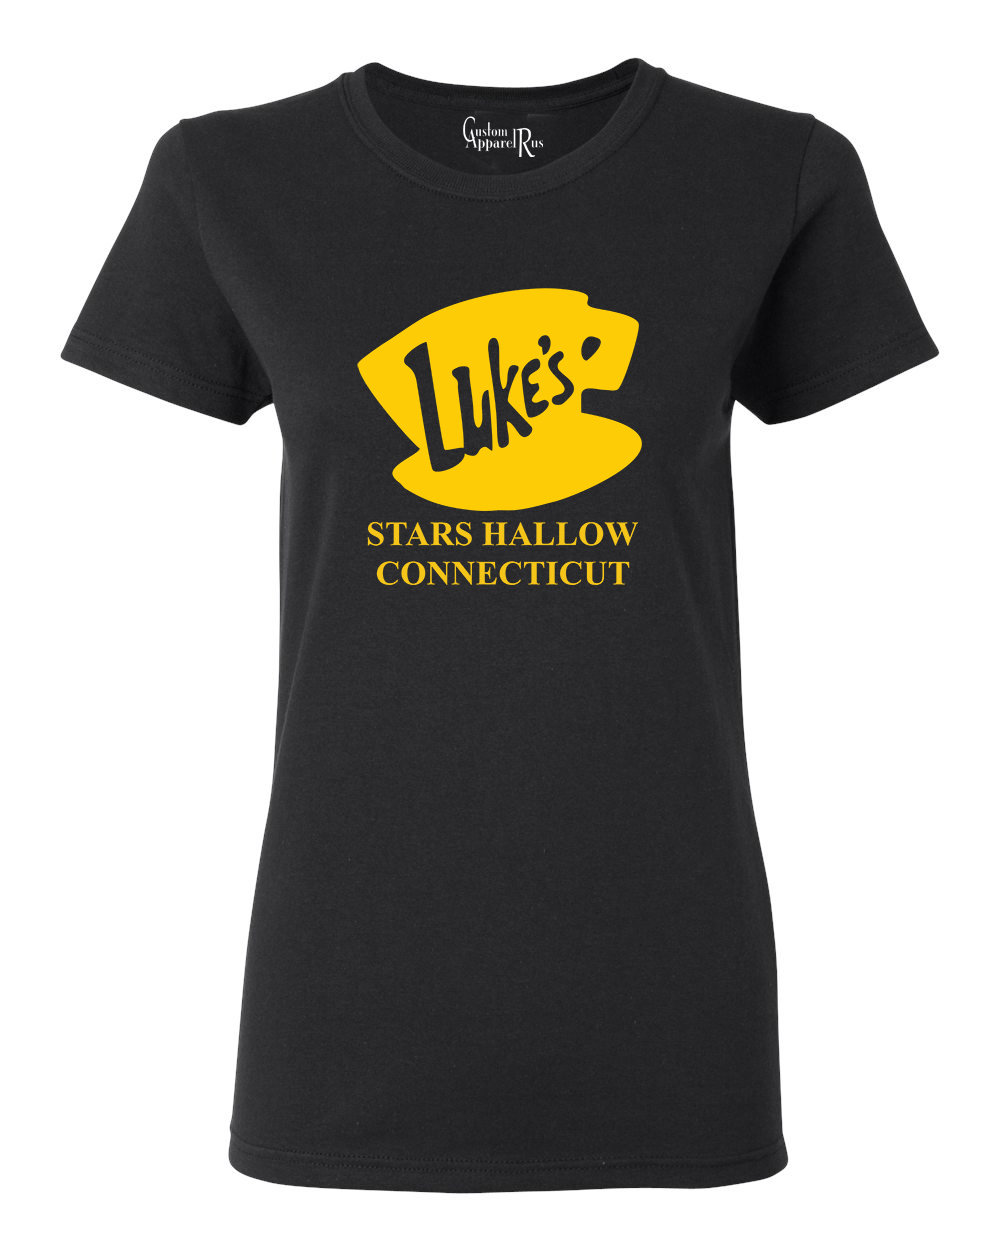 Luke's Diner Stars Hollow CT Gilmore Girls Womens T-Shirt Top